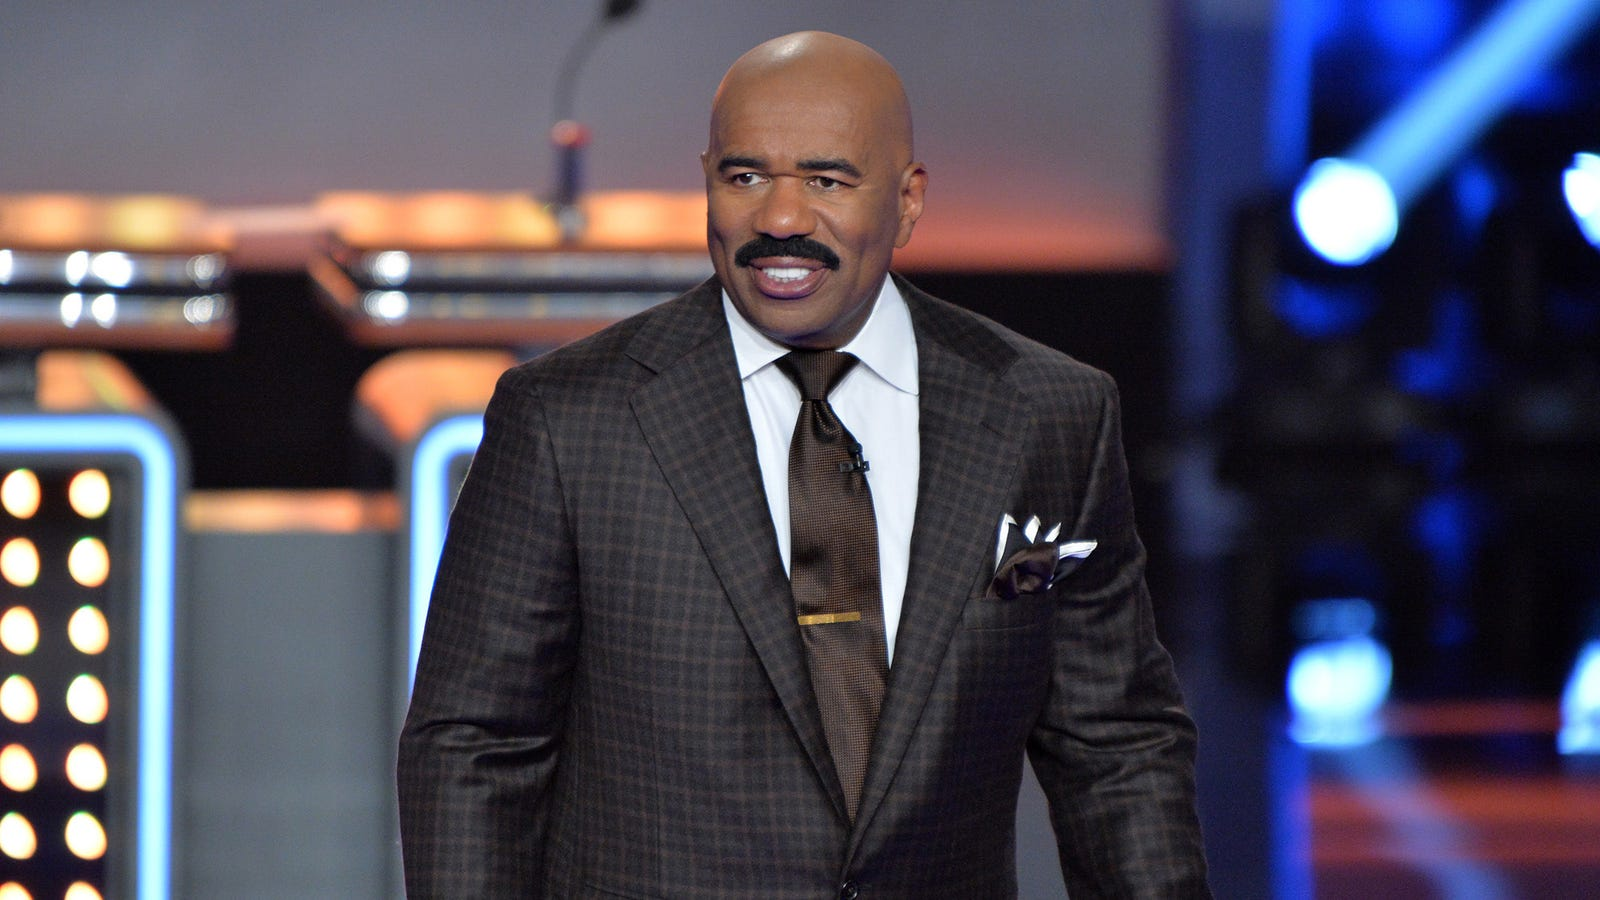 Fed Up: Steve Harvey Is Leaving 'Family Feud' After Yet